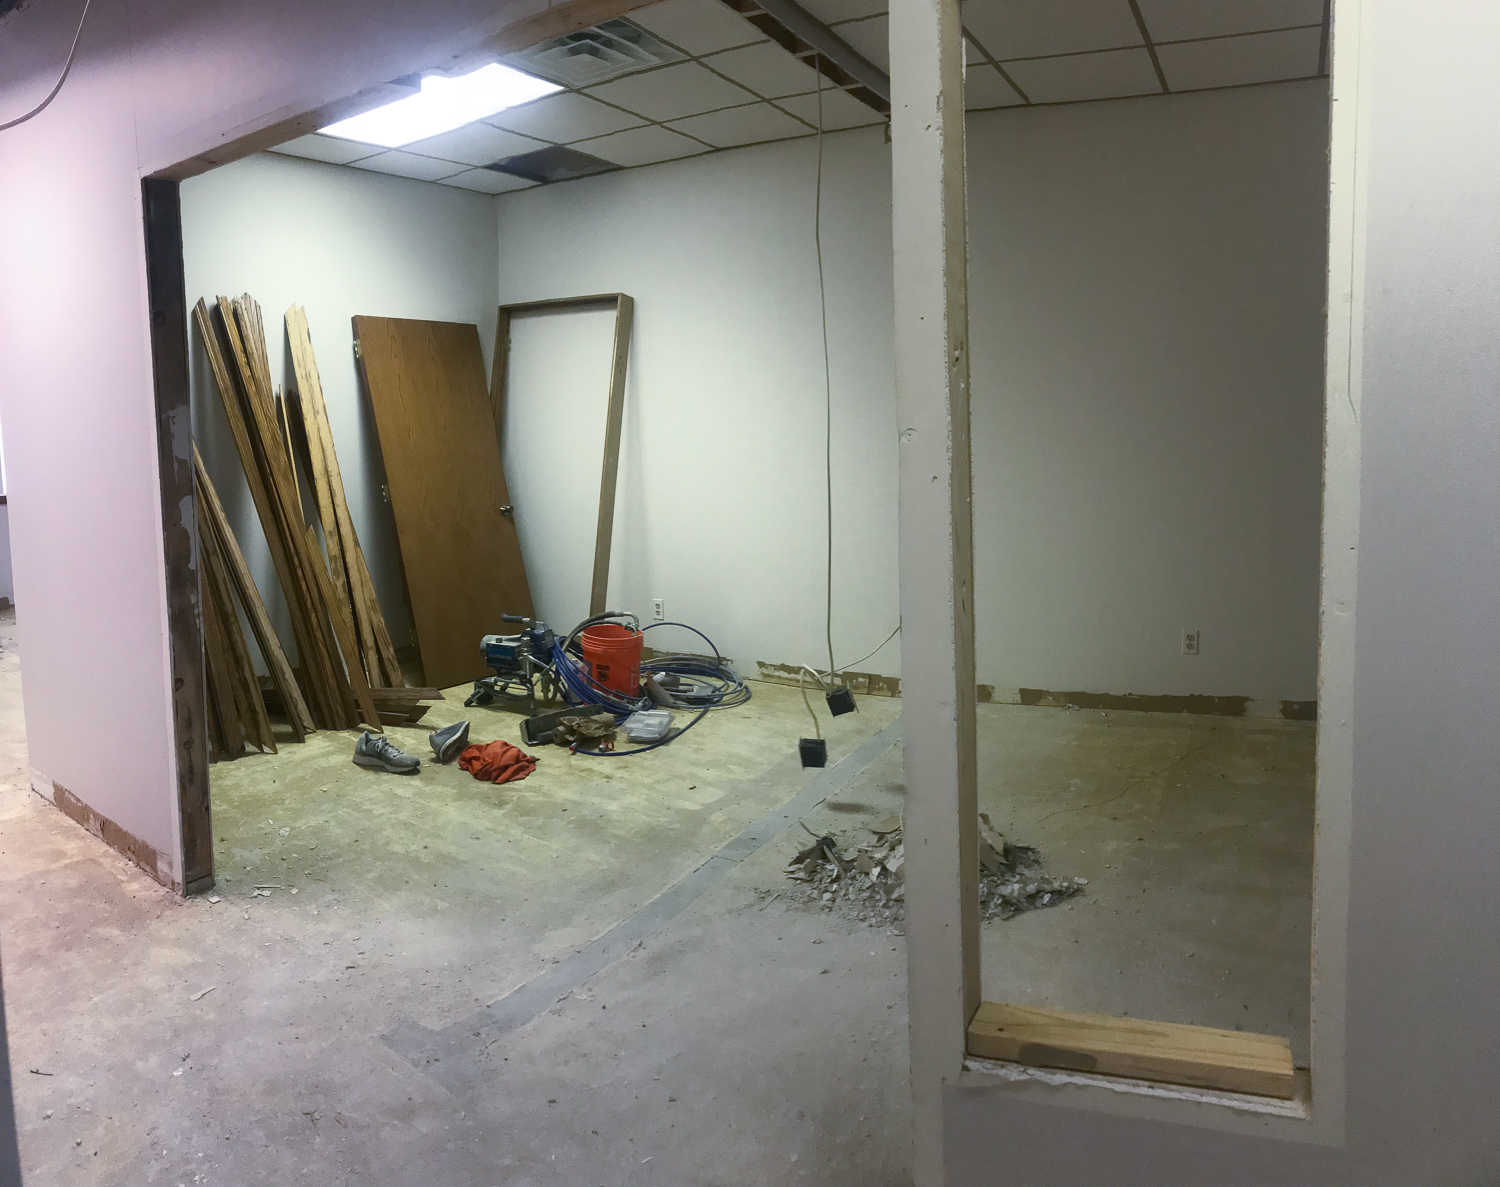 During - new wall up to create the new team office spaces